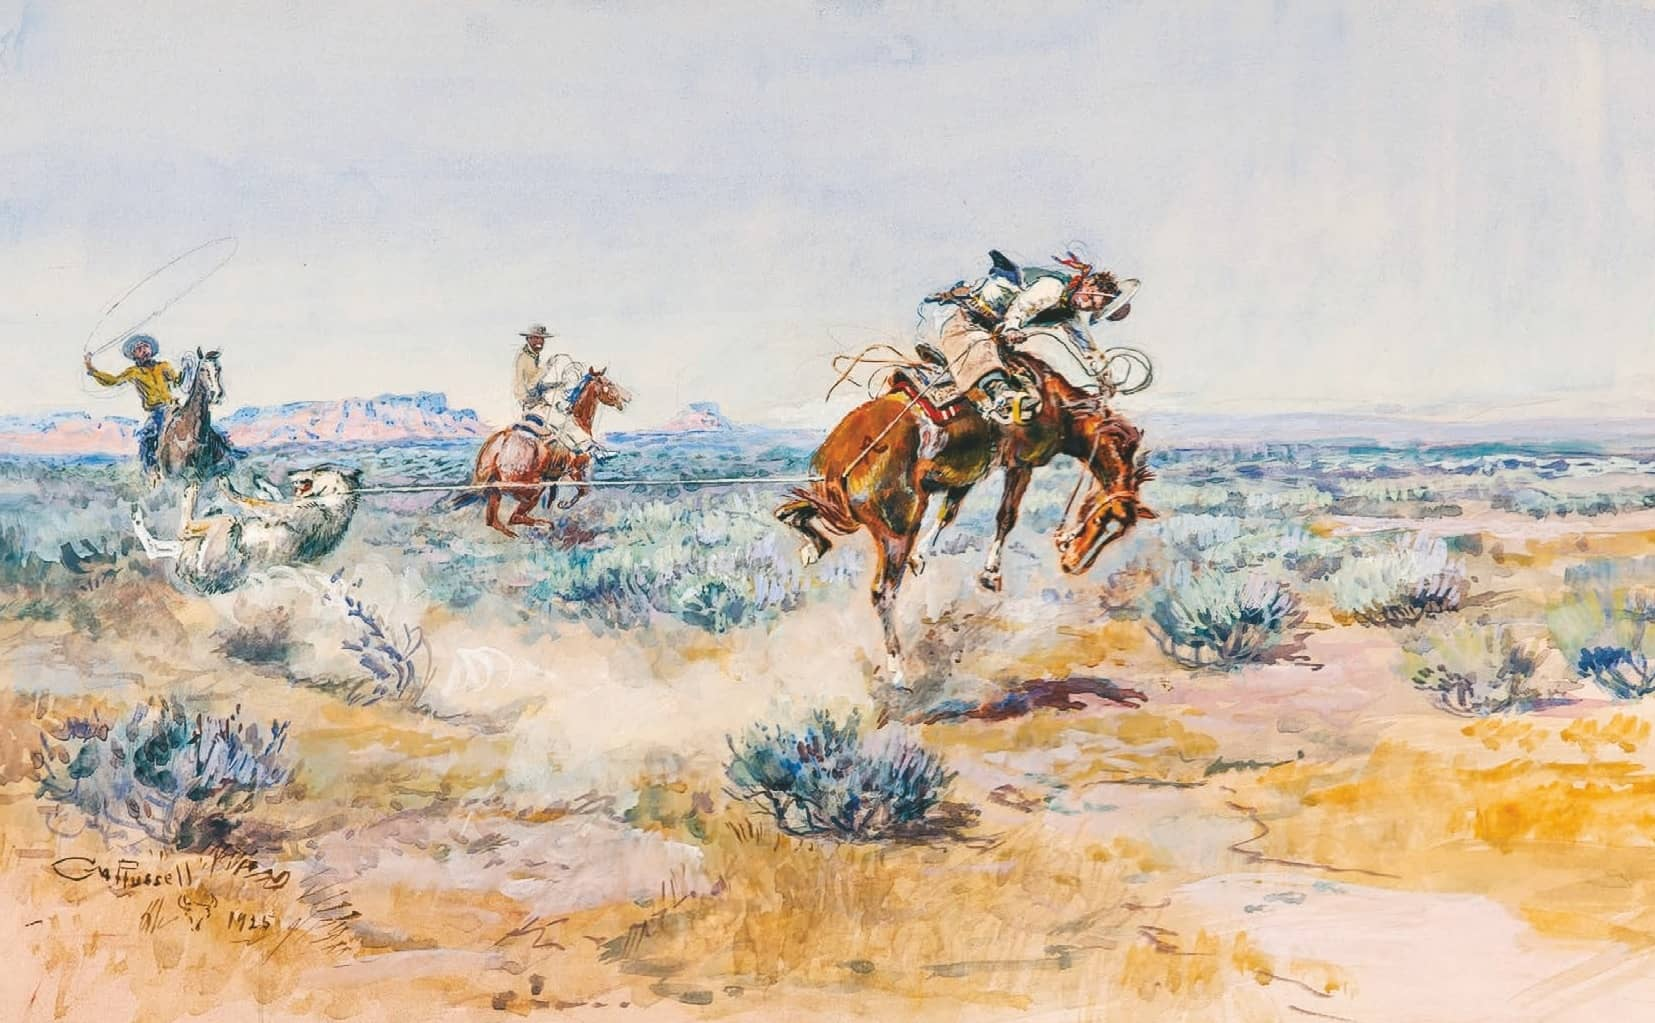 WESTERN ART IN PANDEMICS, THEN and NOW